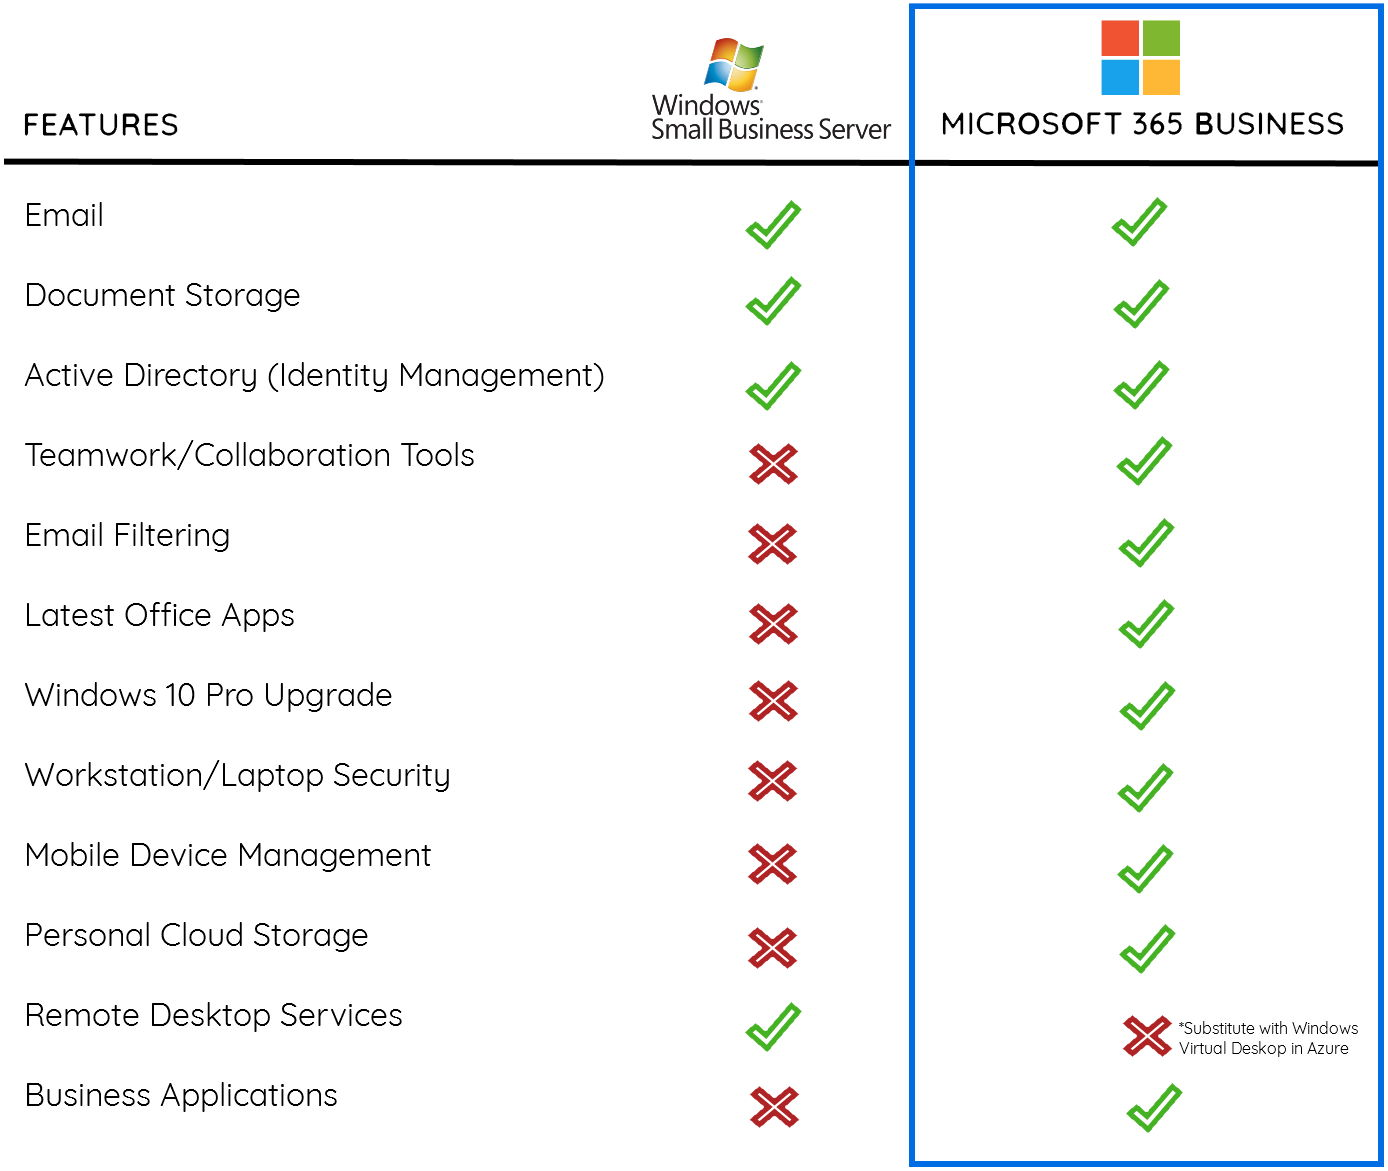 Microsoft 365 Business vs Small Business Server | How to